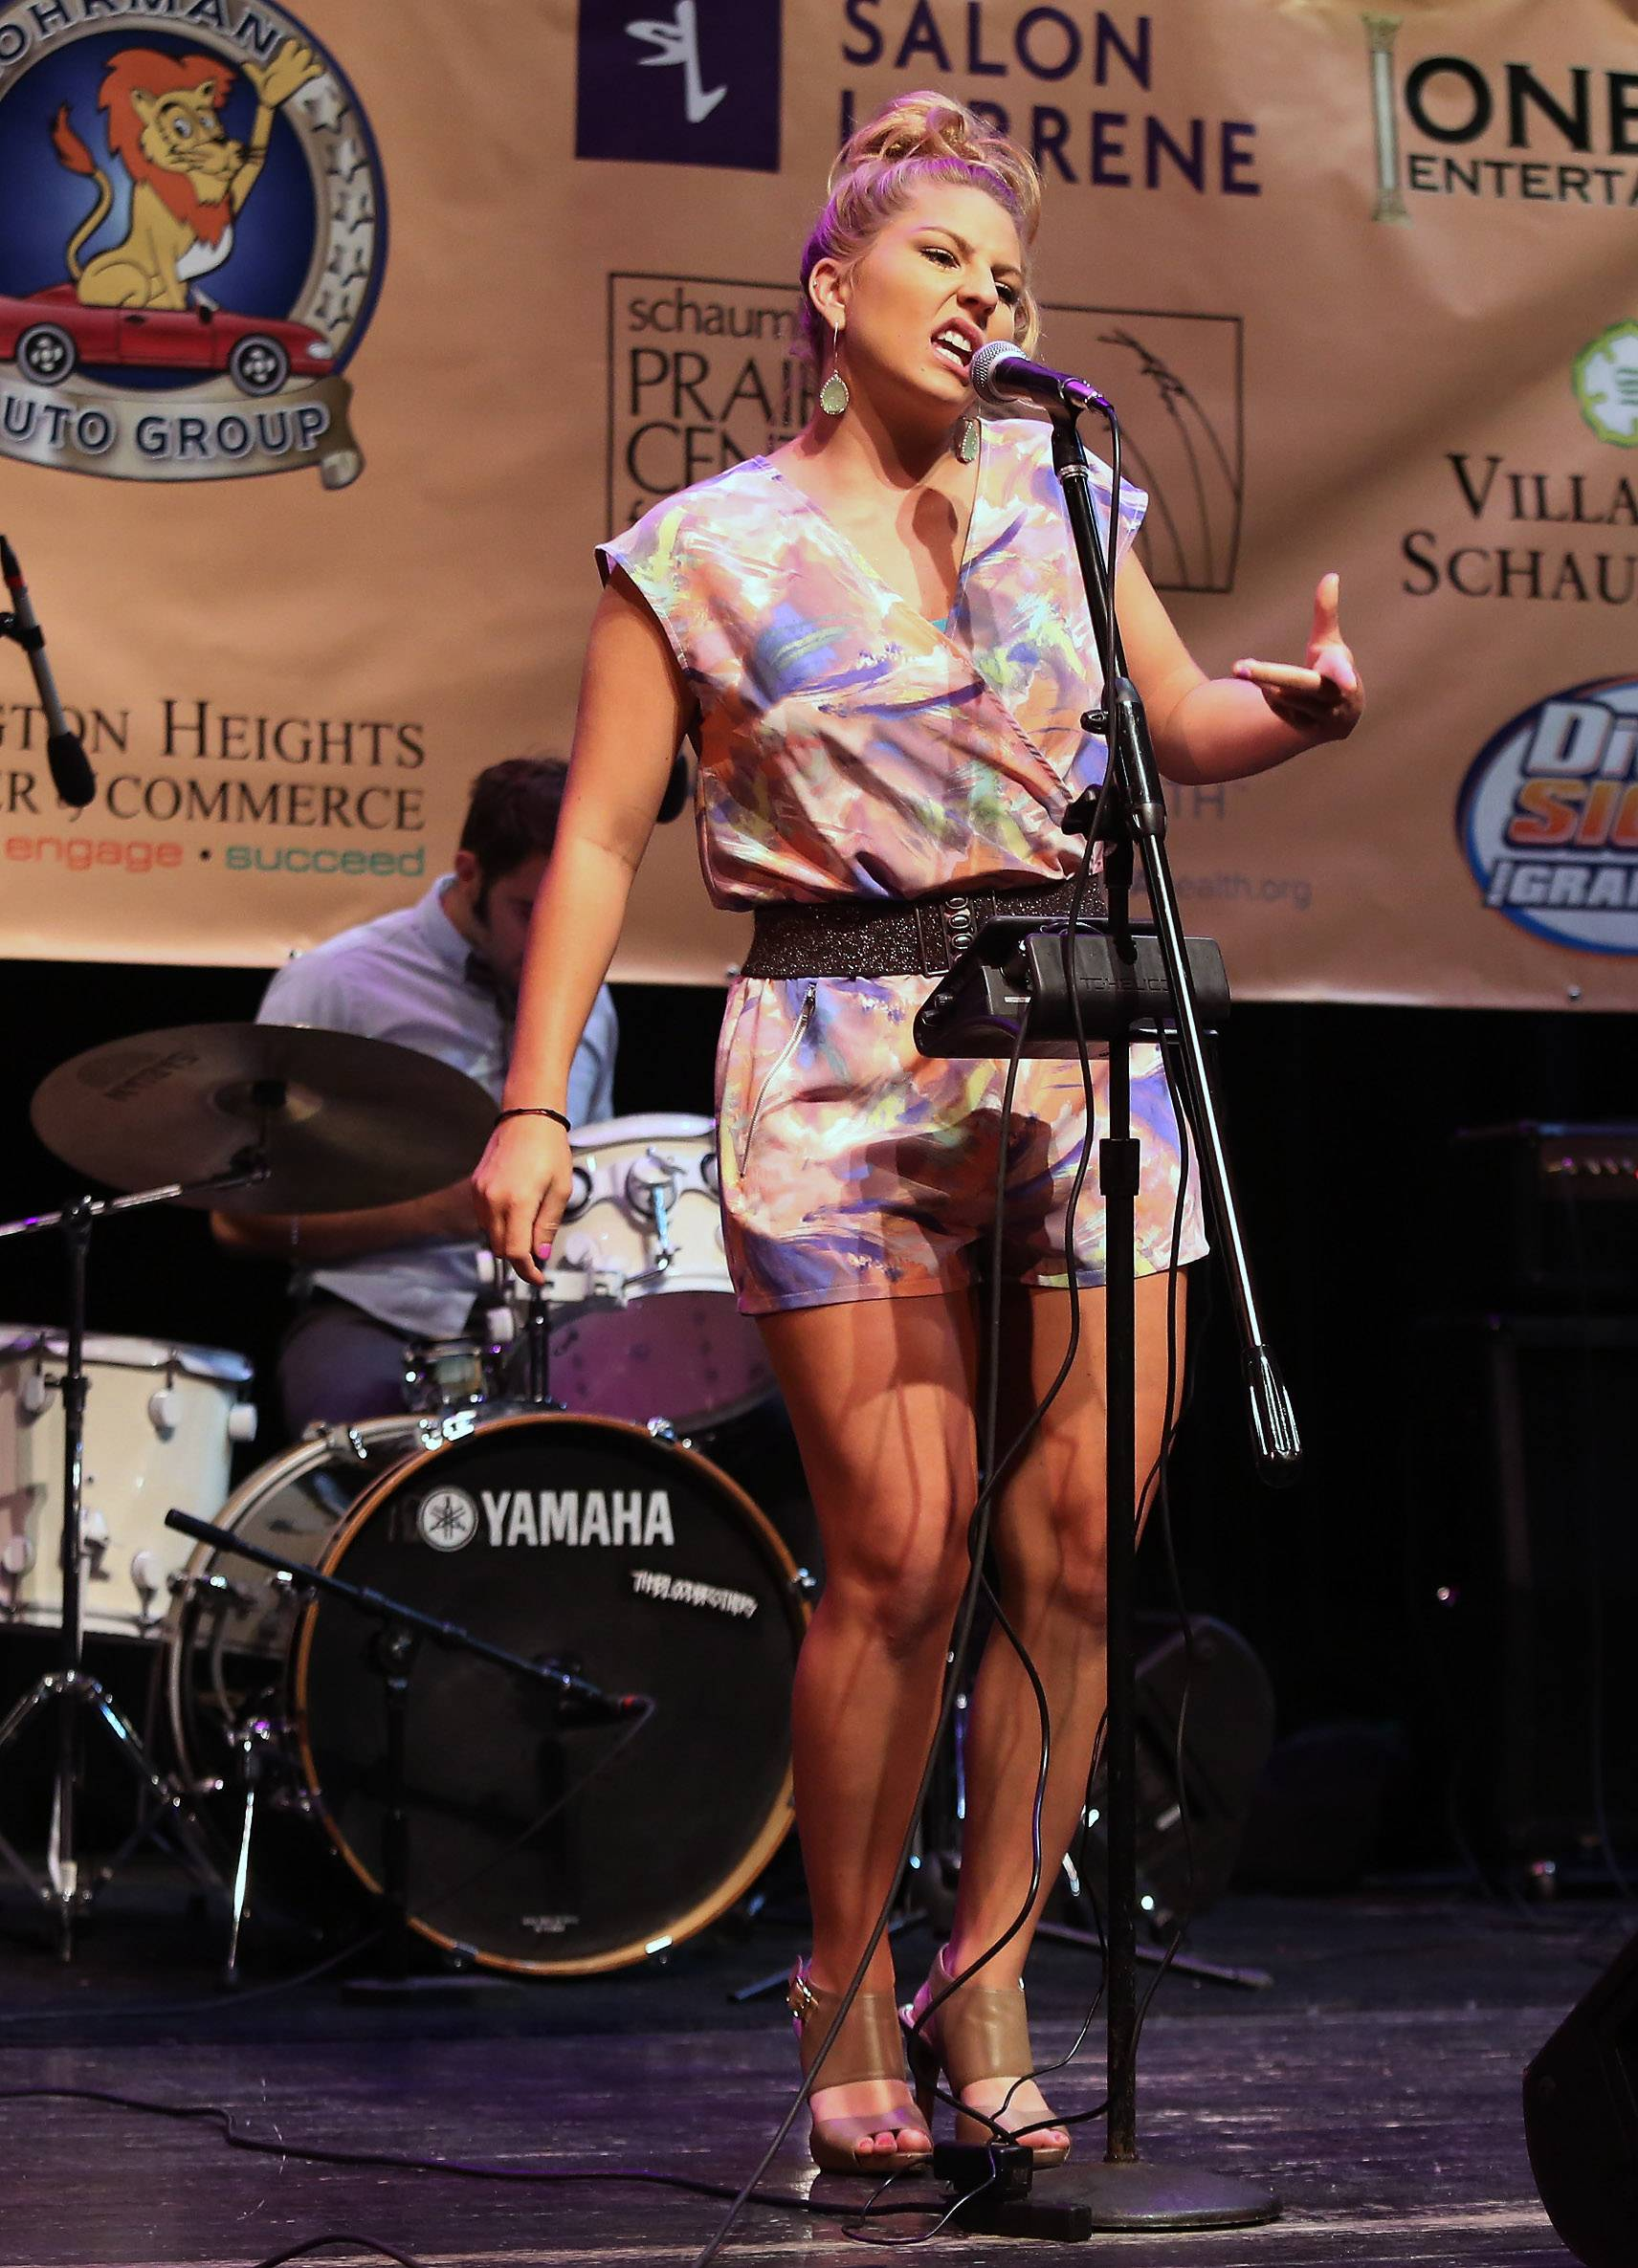 Laura Burke, formerly of Arlington Heights, was a 2015 co-winner of Suburban Chicago's Got Talent with Ryan Cooper of Schaumburg. She now regularly performs with Mike Zabrin's band Funktastic.